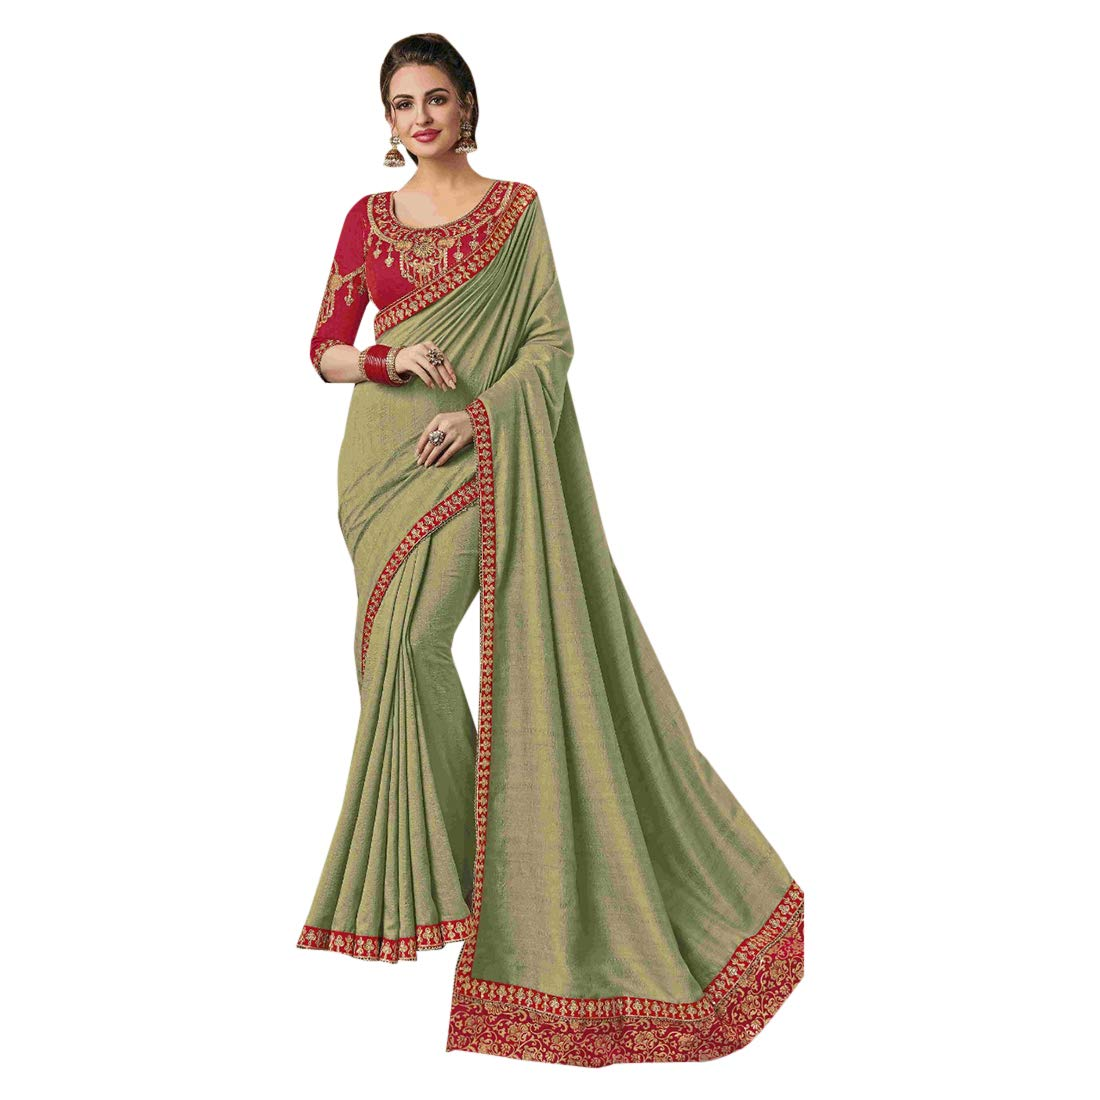 Ethnic Designer Fancy Silk Sari with Blouse piece Indian Saree for Women Party wear 7761